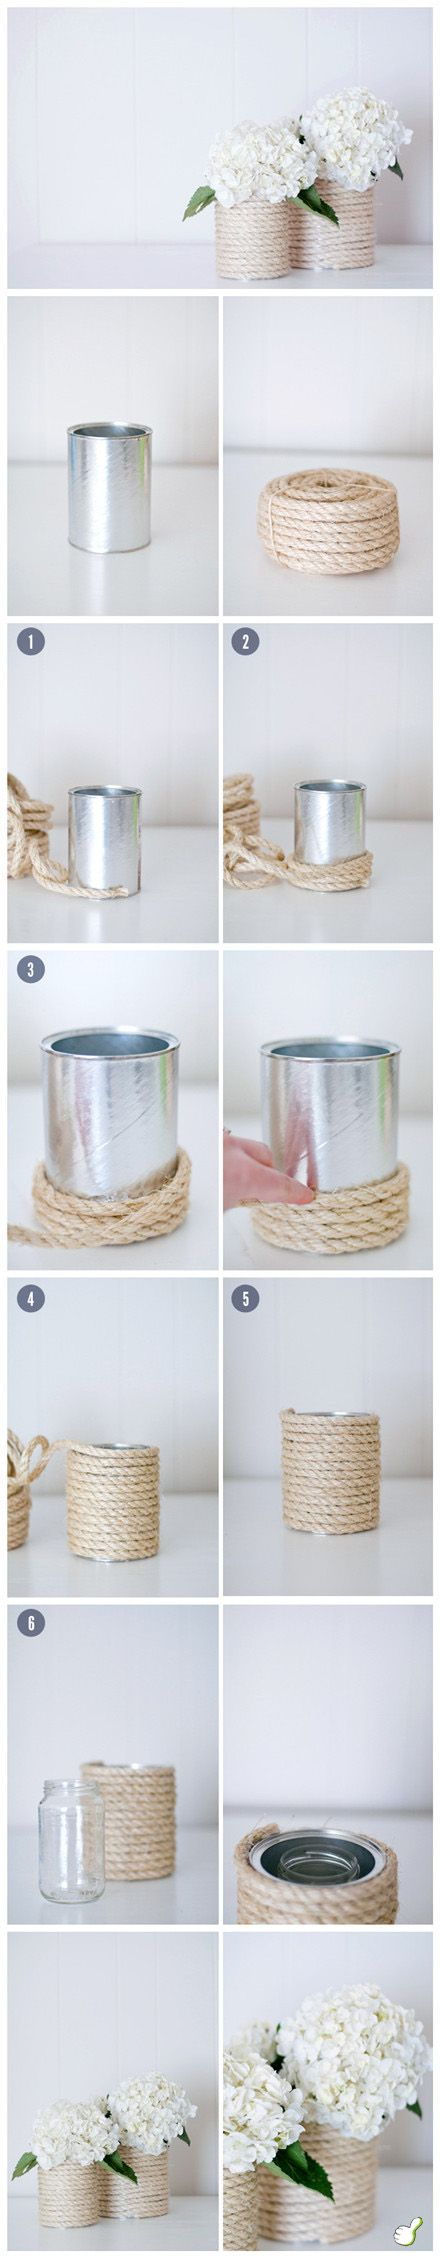 Turn a can into a pretty cool looking vase